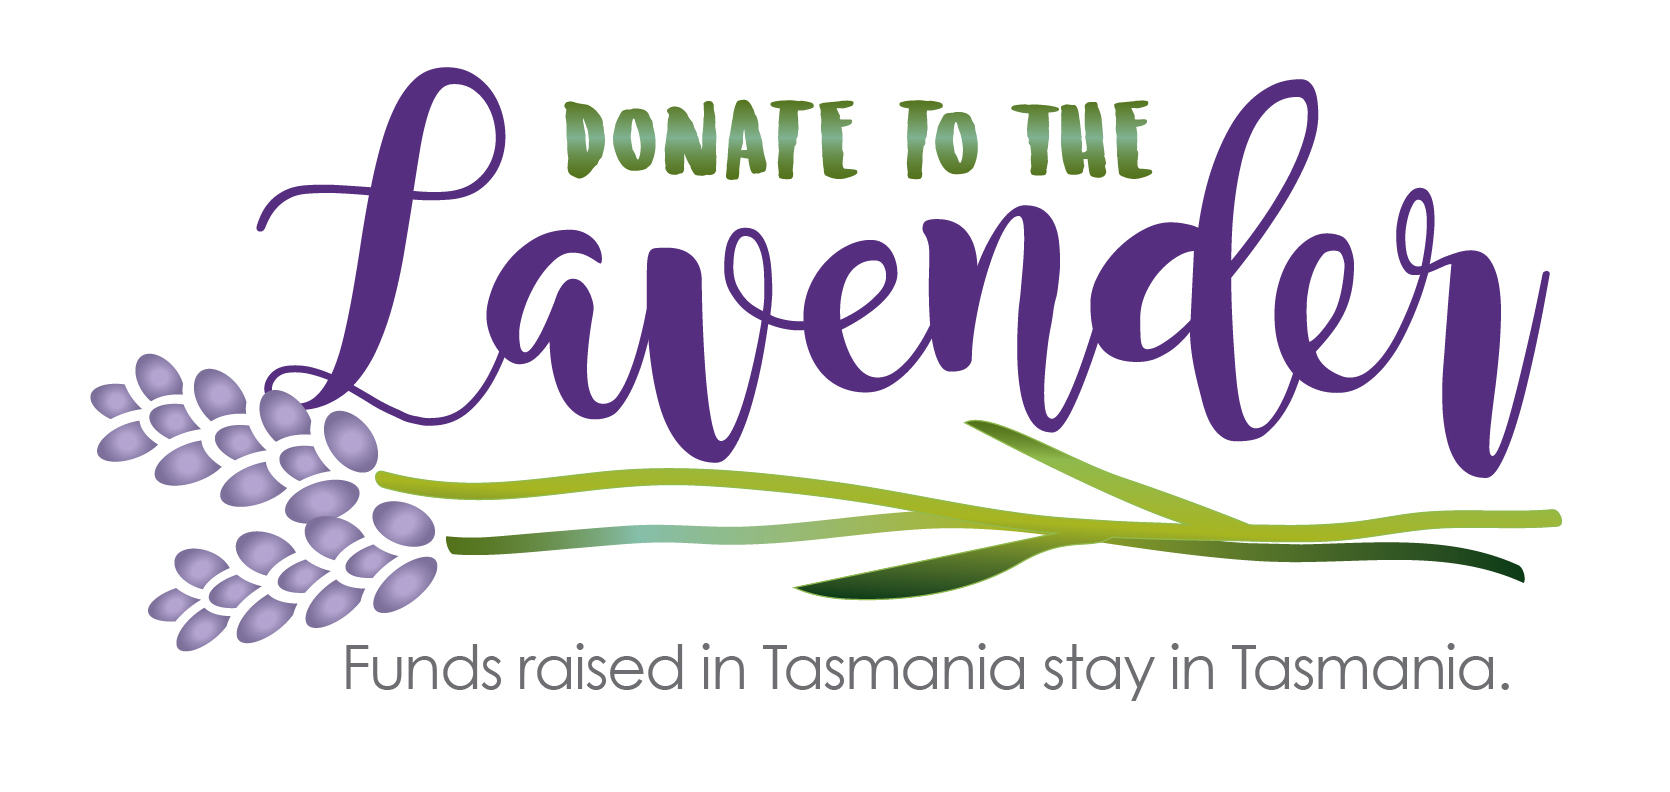 Donate to the Lavender logo